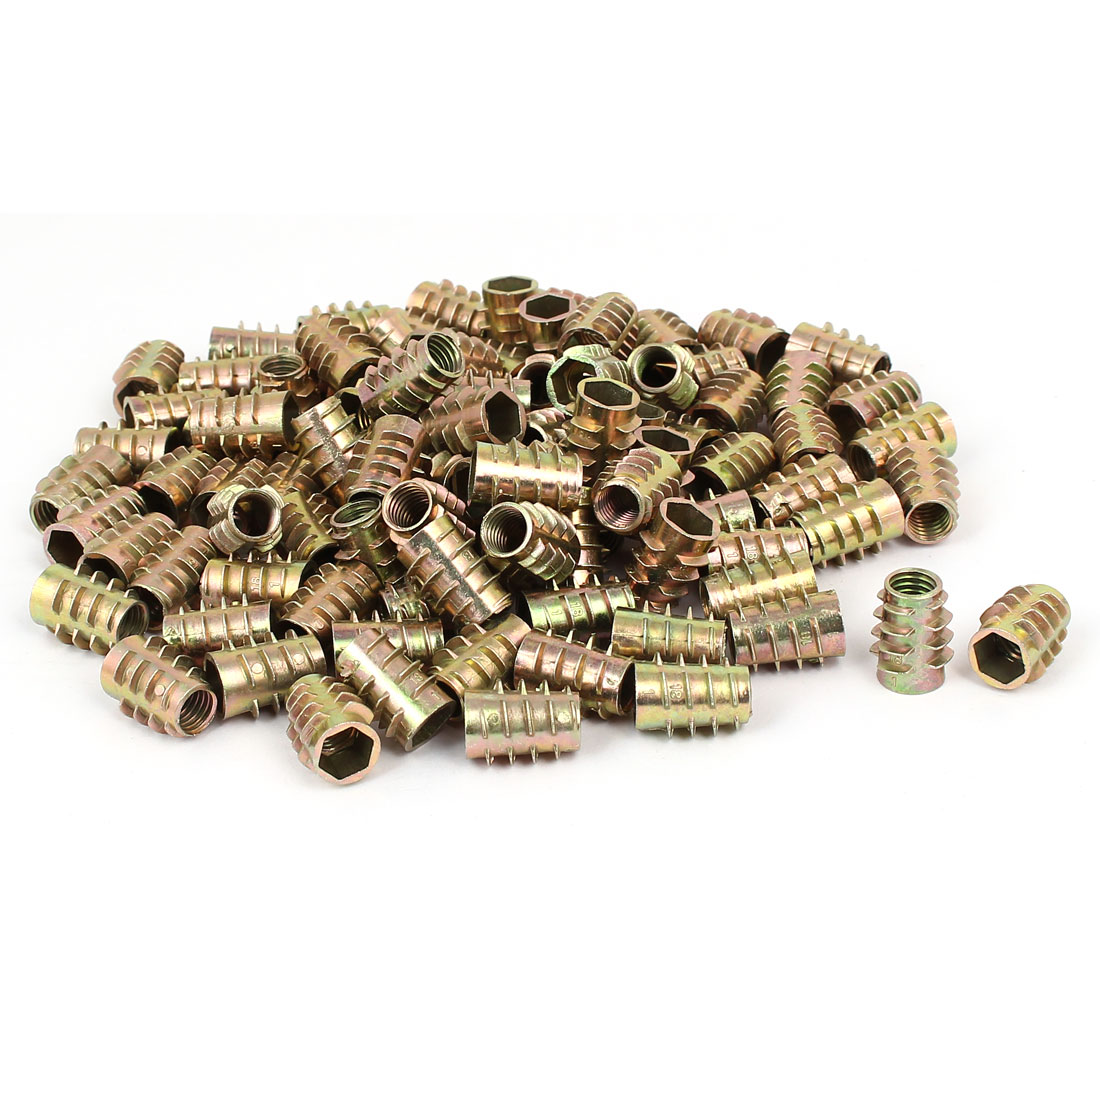 Wood Furniture Zinc Alloy Hex Socket Insert Screws E-Nuts M8x18mm 100pcs